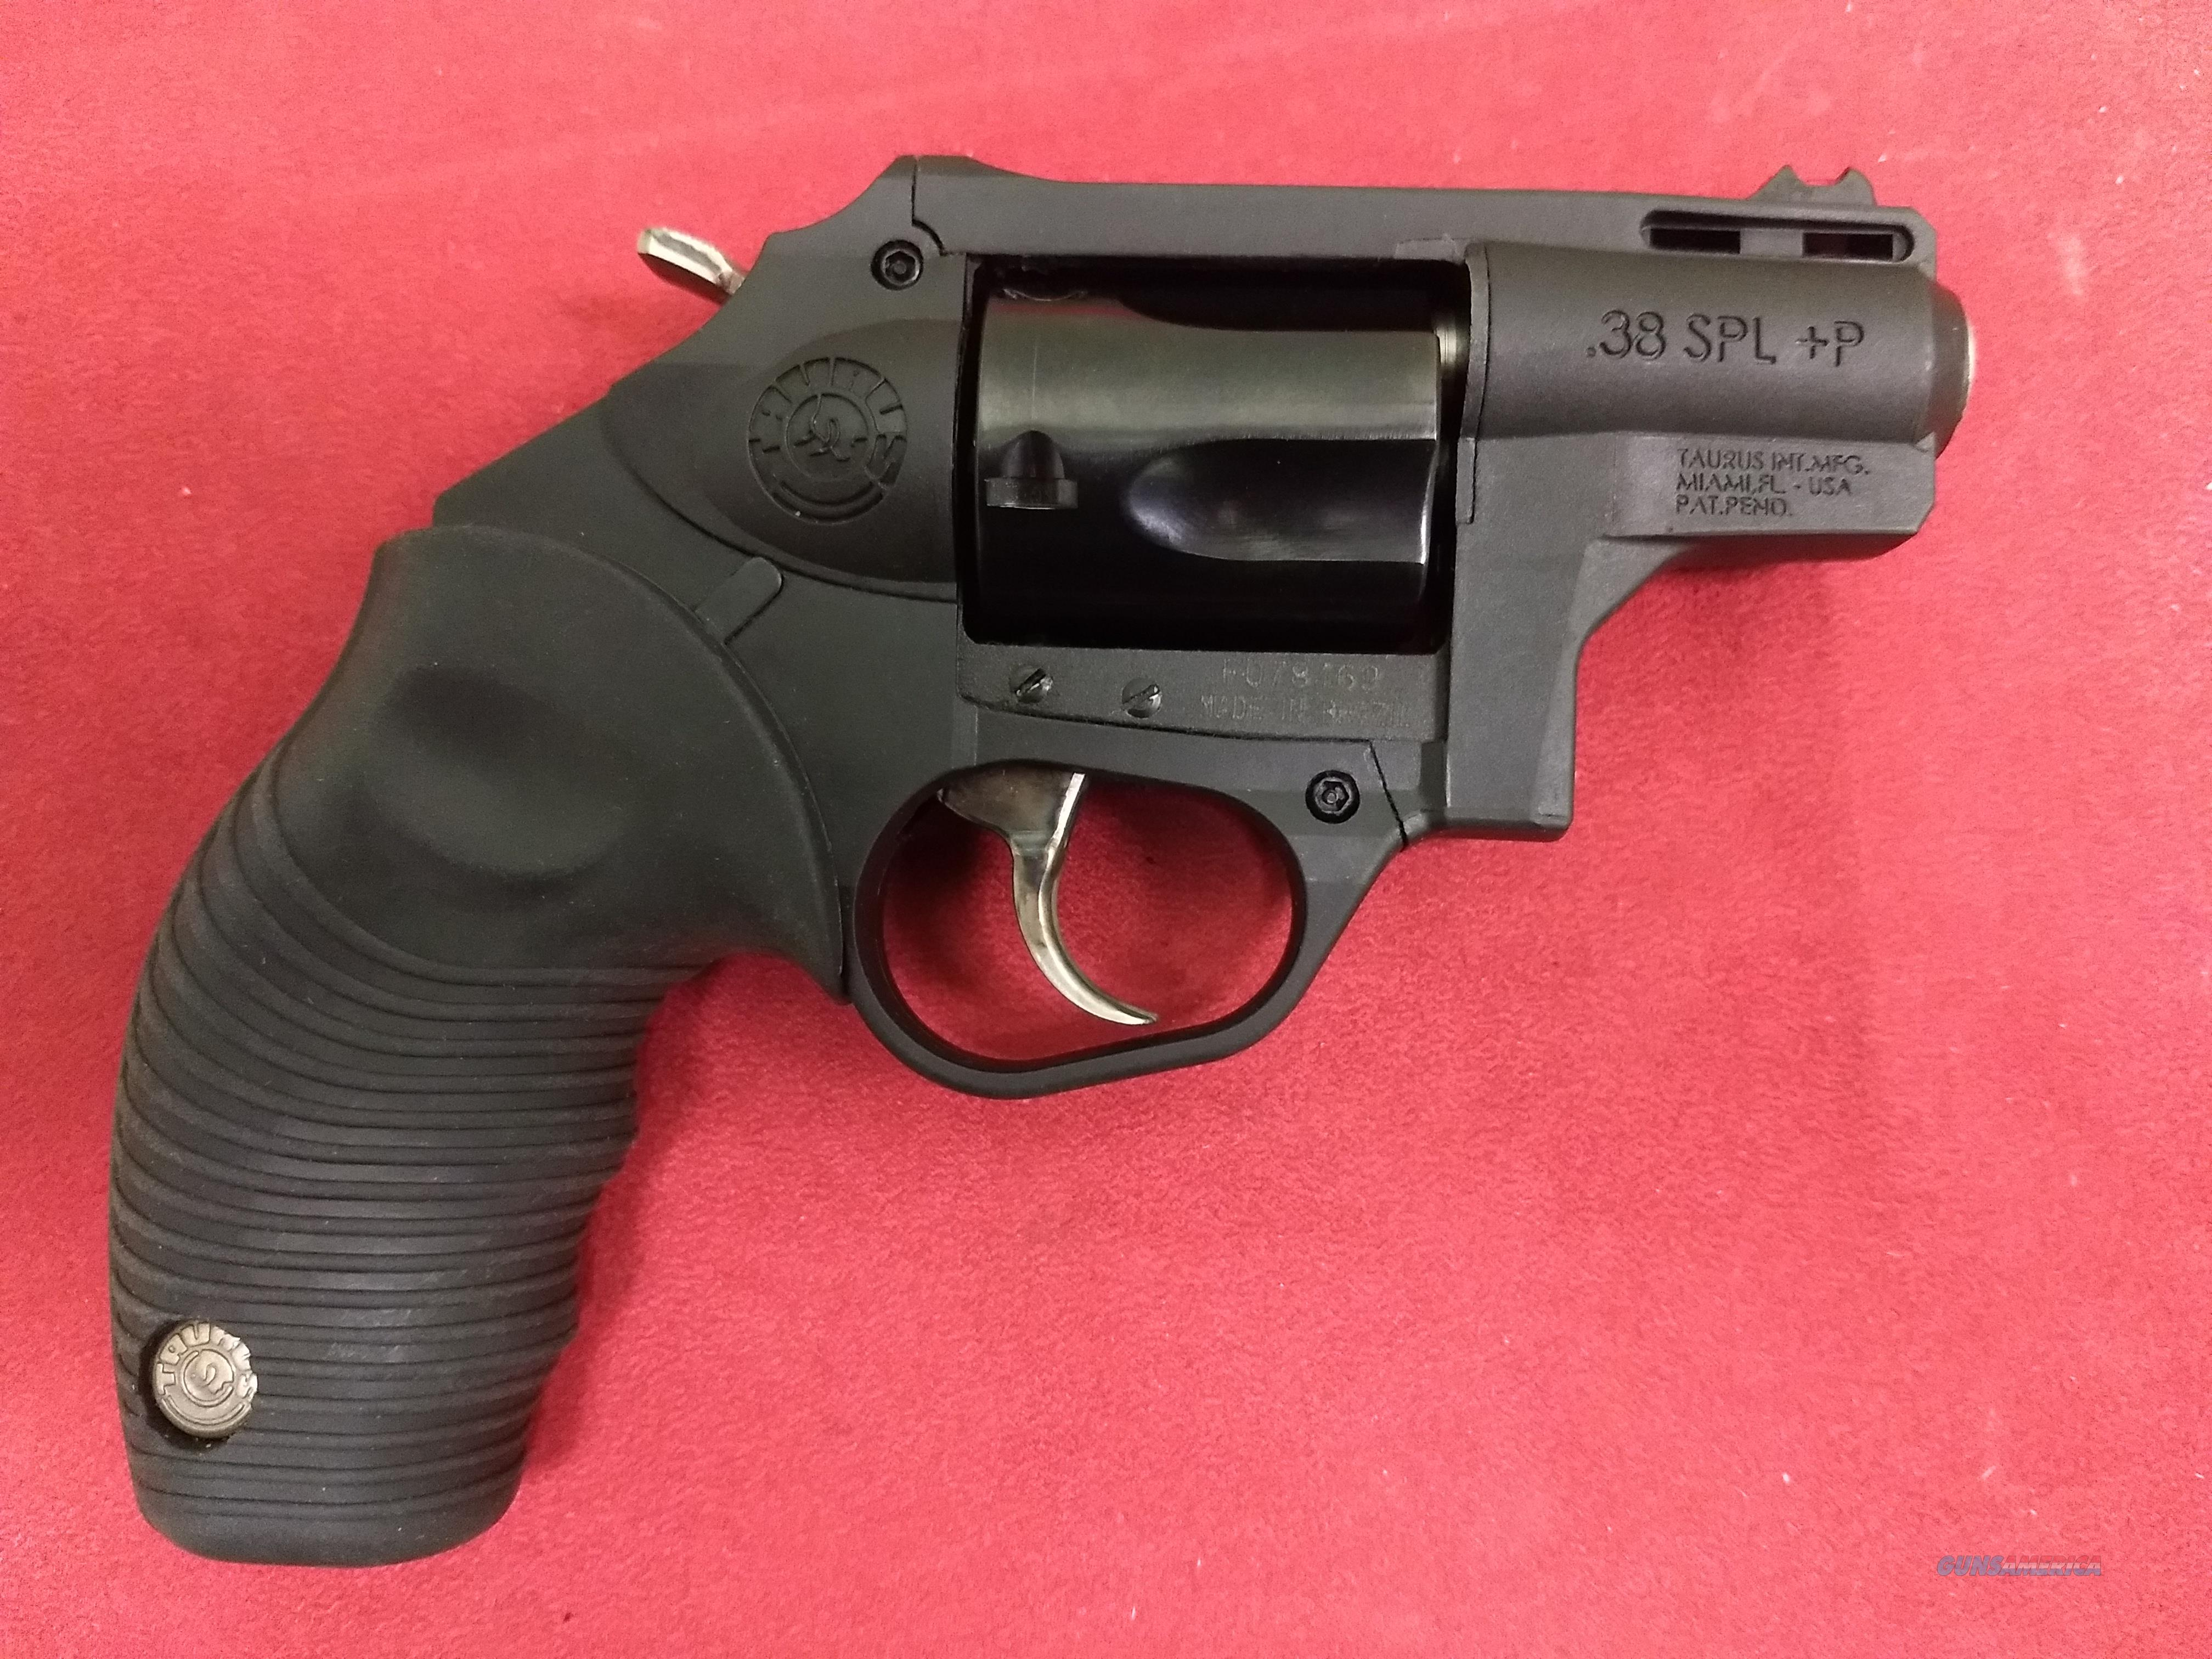 Taurus Protector Poly Revolver, 5 shot, .38 Spl+P, Like New!  Guns > Pistols > Taurus Pistols > Revolvers